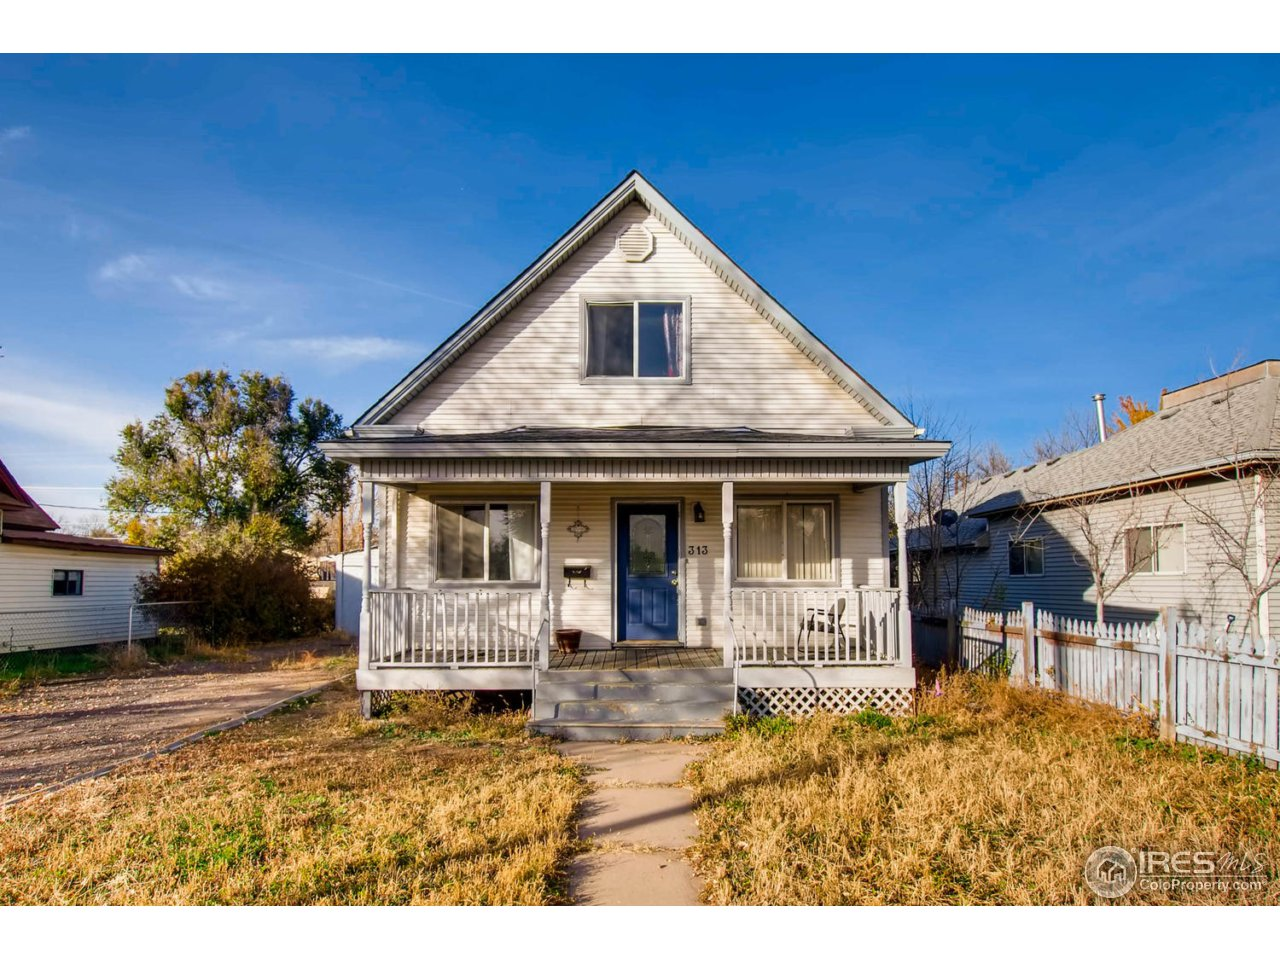 313 13th St, Greeley CO 80631